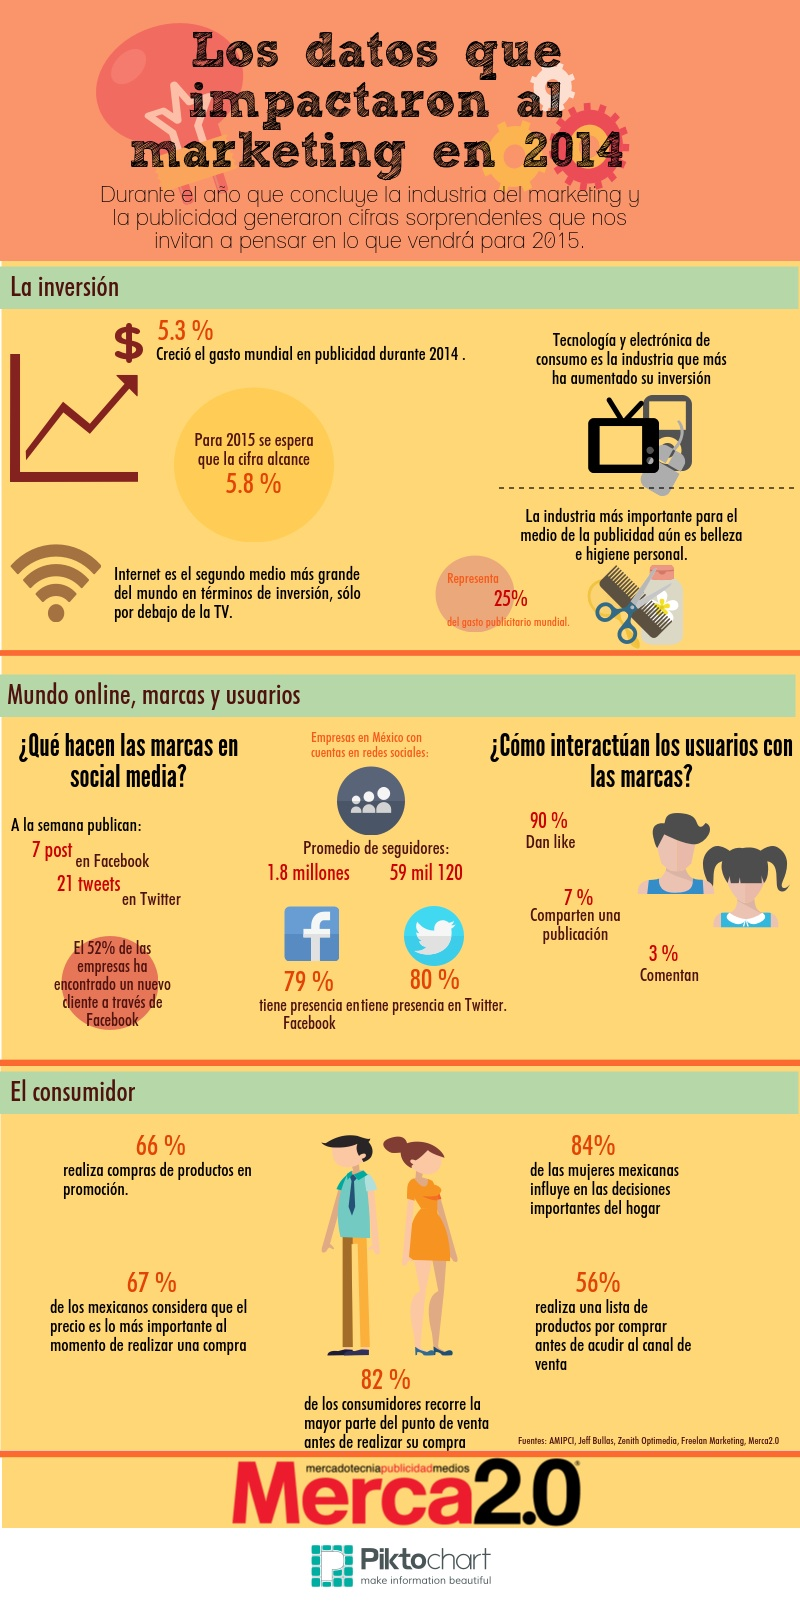 Los datos que impactaron al marketing en 2014